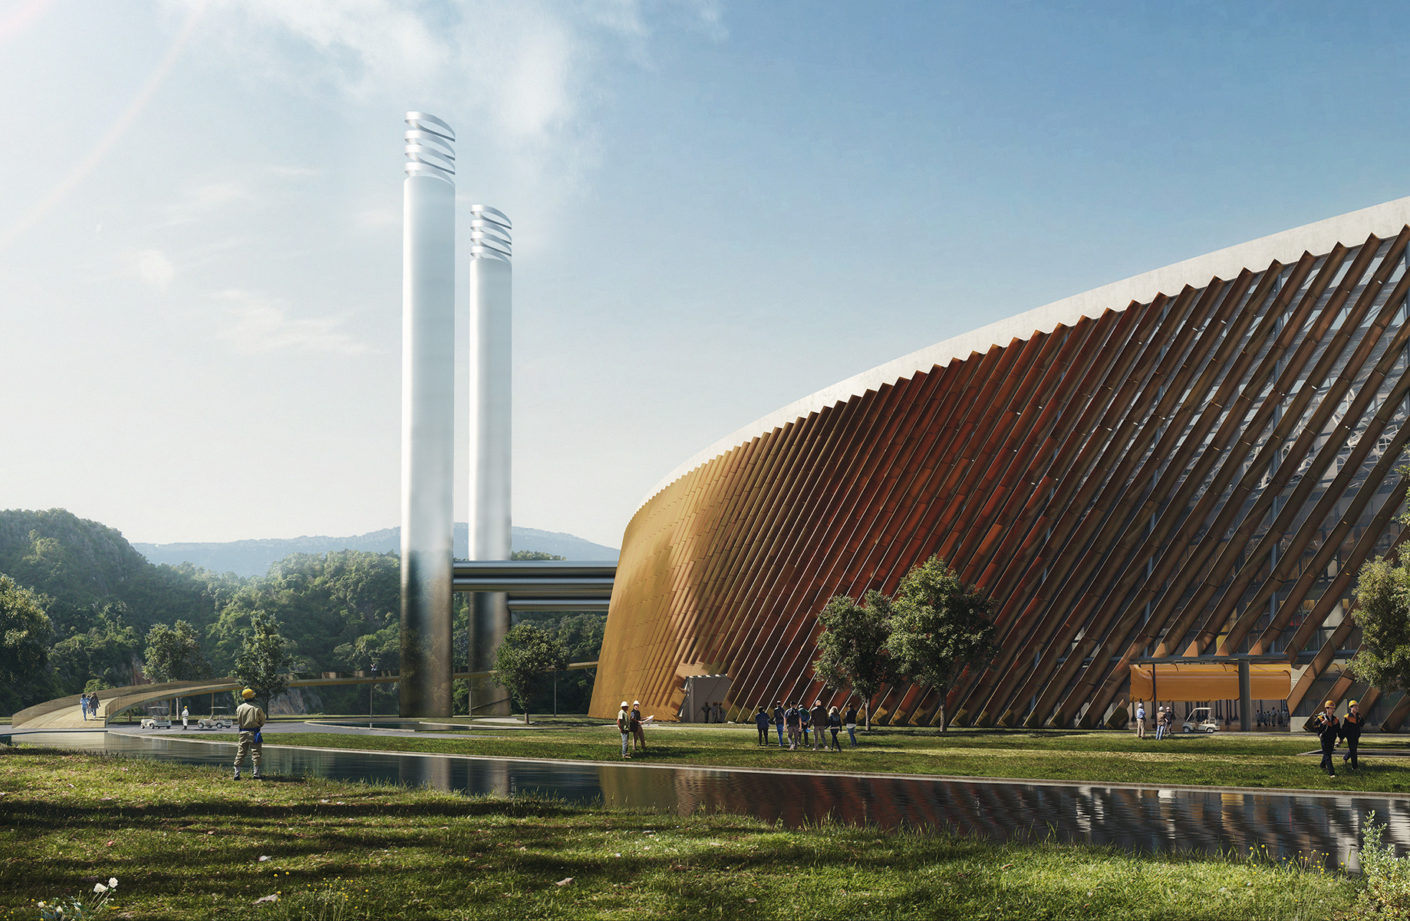 The world's largest waste to energy power plant, combined with education, exhibition and research facilities - rendering